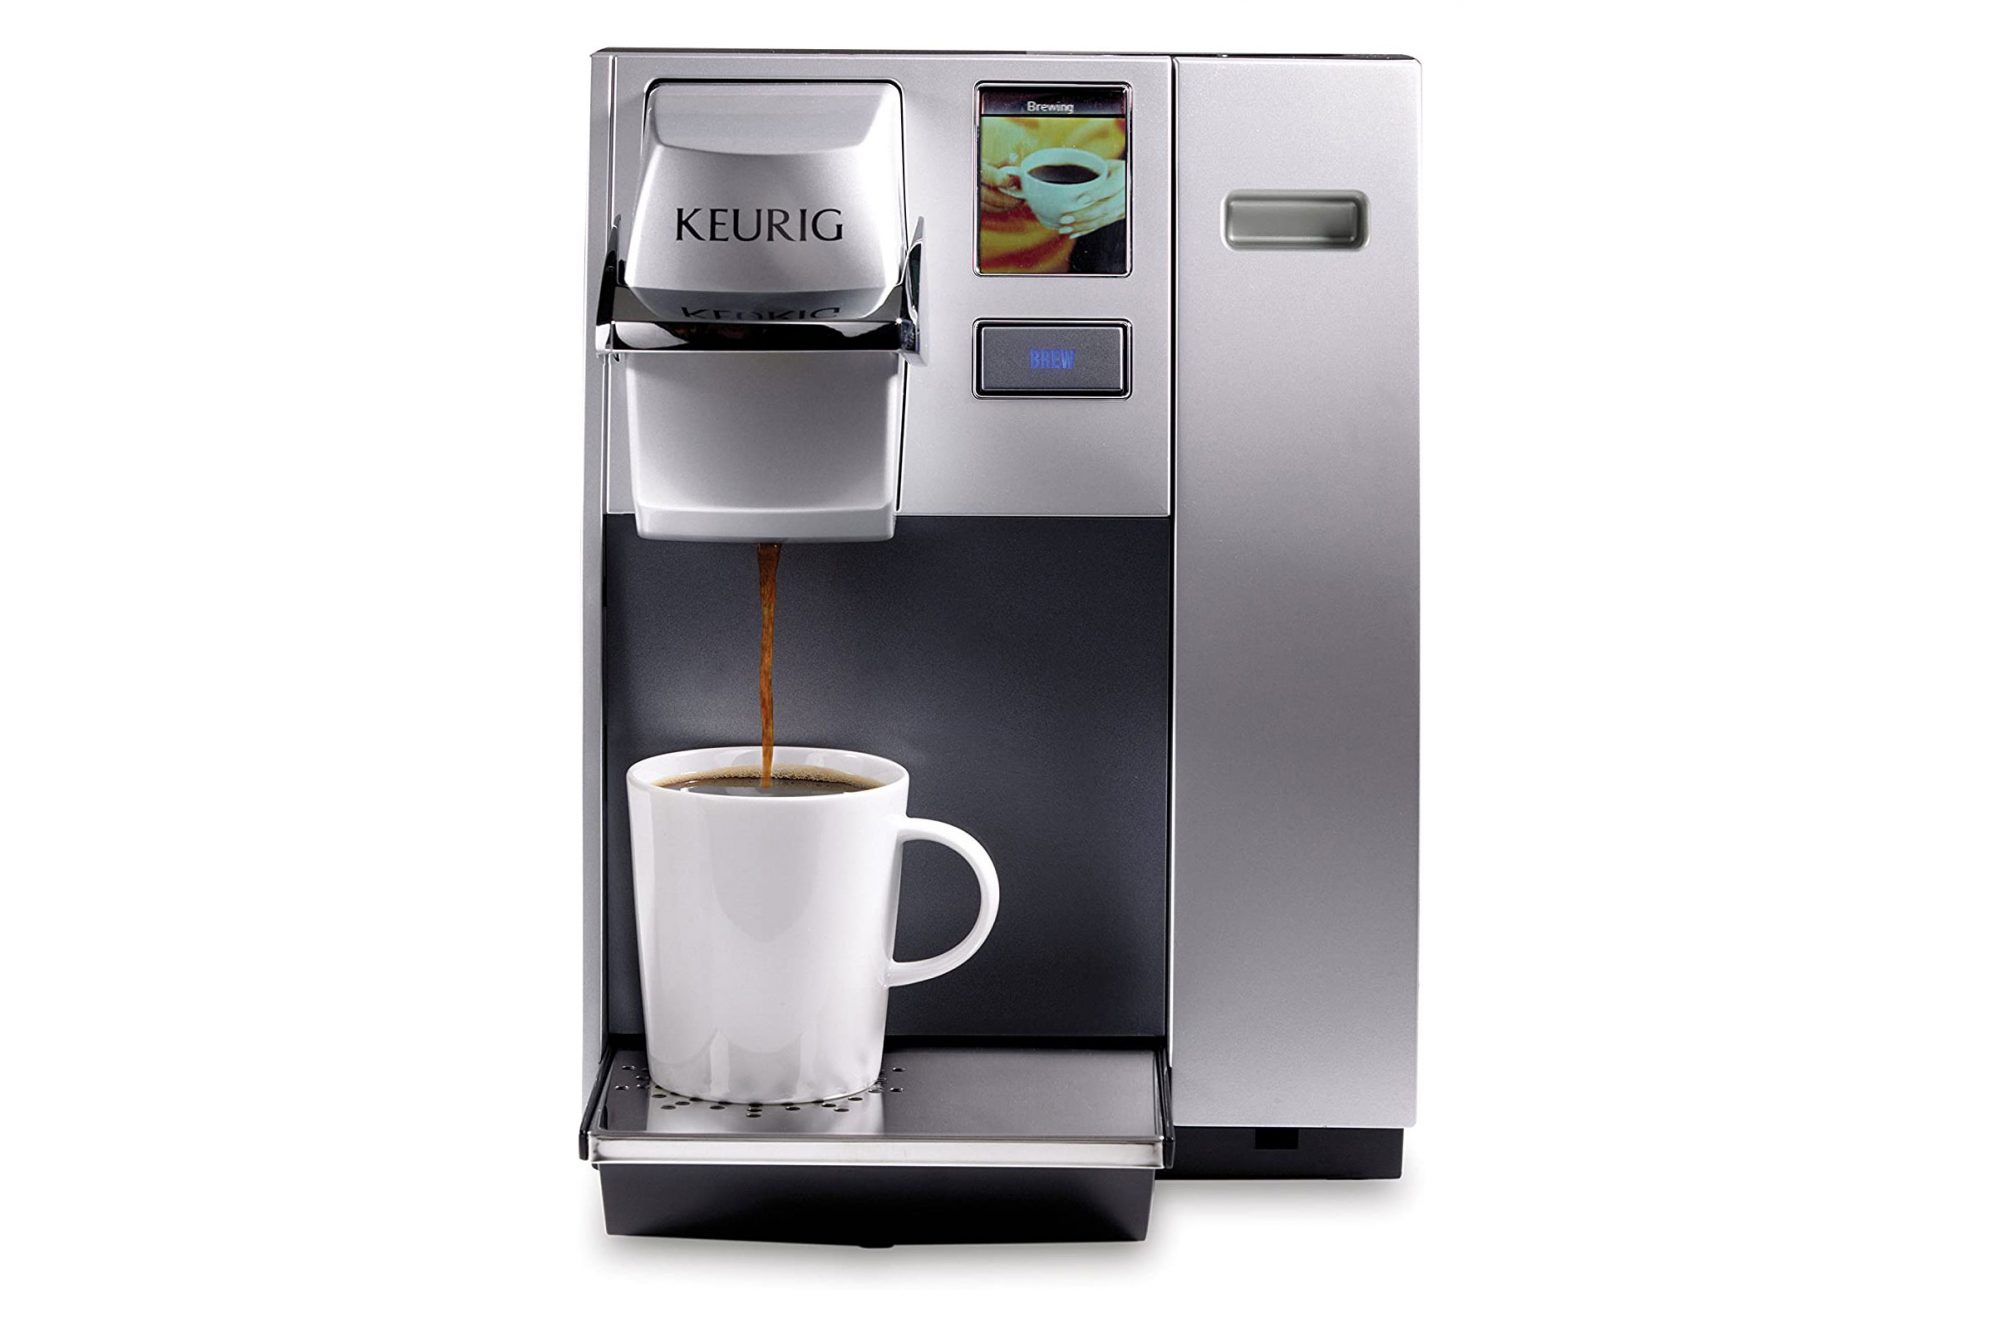 Keurig K155 Office Pro Coffee maker brewing coffee into white mug